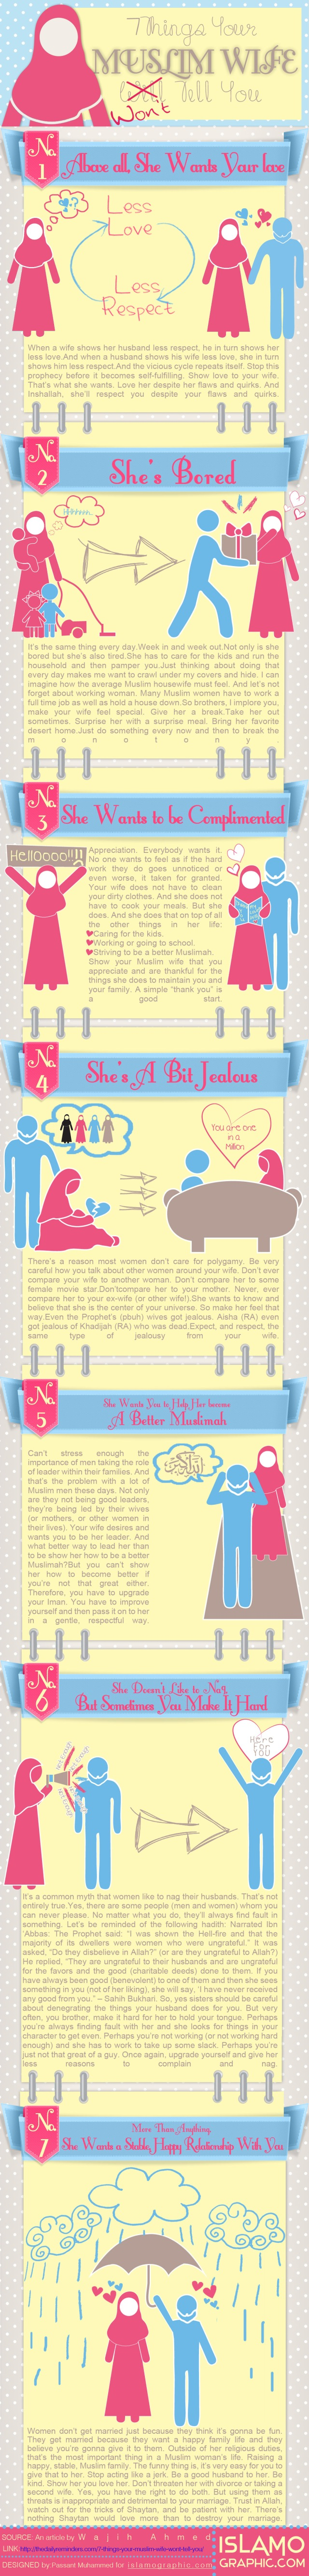 7 things Your Muslim Wife Won't Tell You